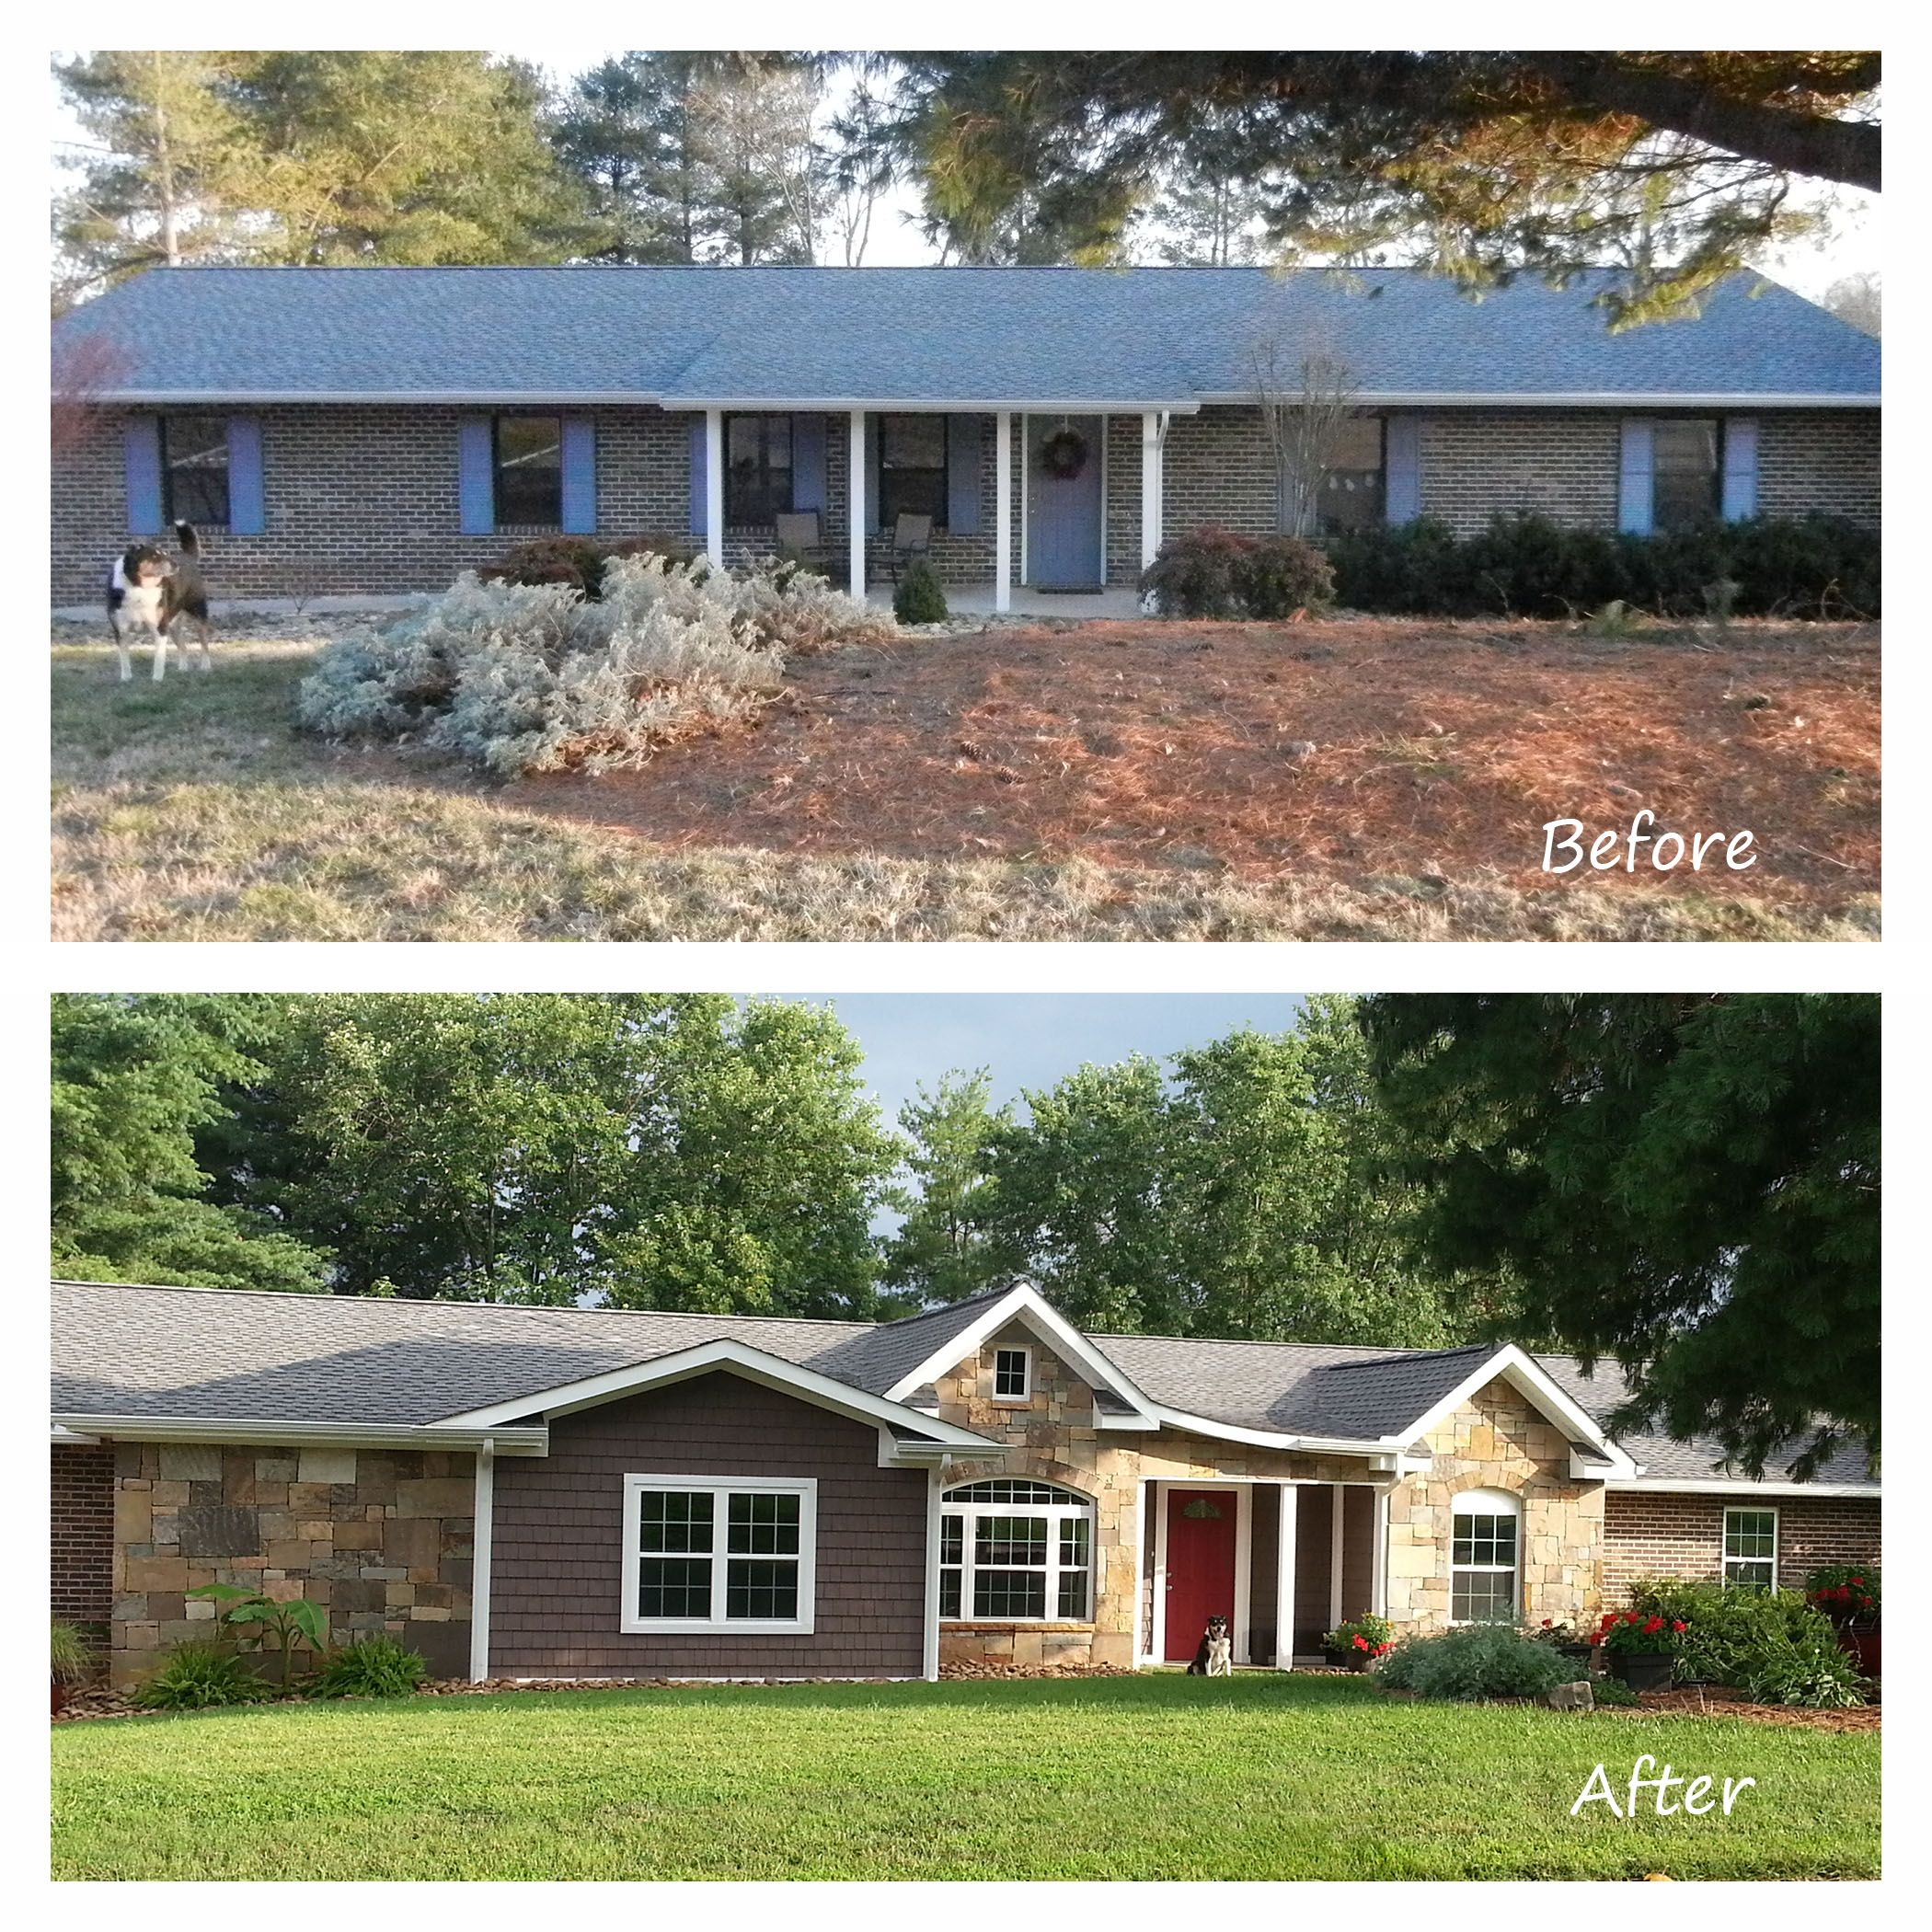 Before and after exterior renovation ranch house remodel for External house renovation